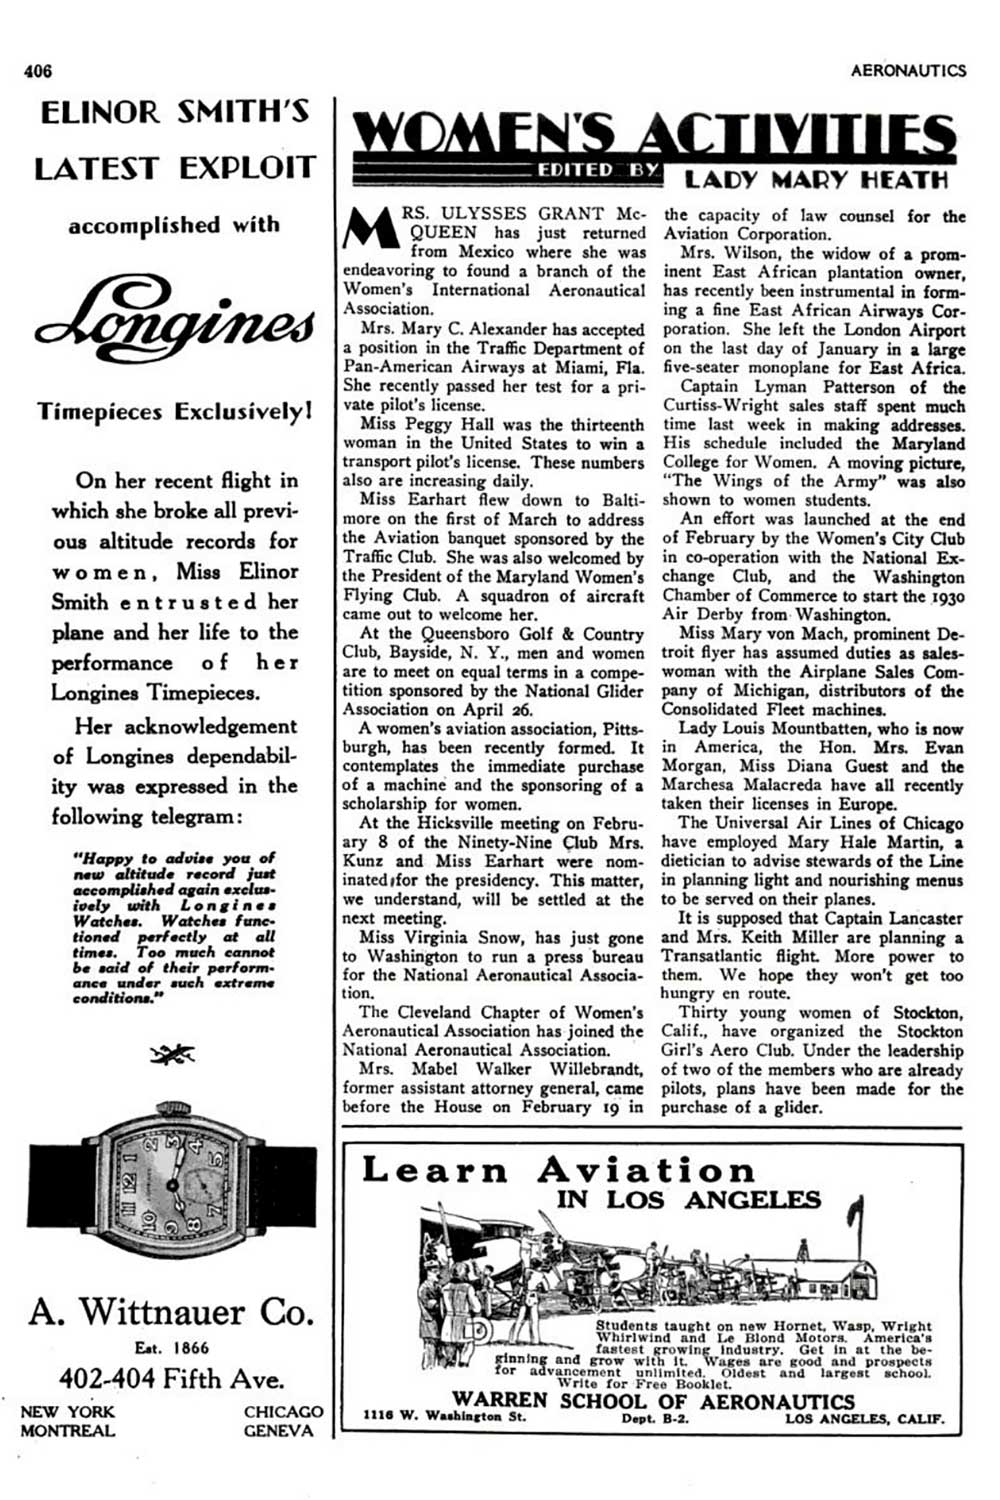 Longines advertisement, from 1930, publicising one of the altitude records set by Elinor Smith, she was wearing Longines watches